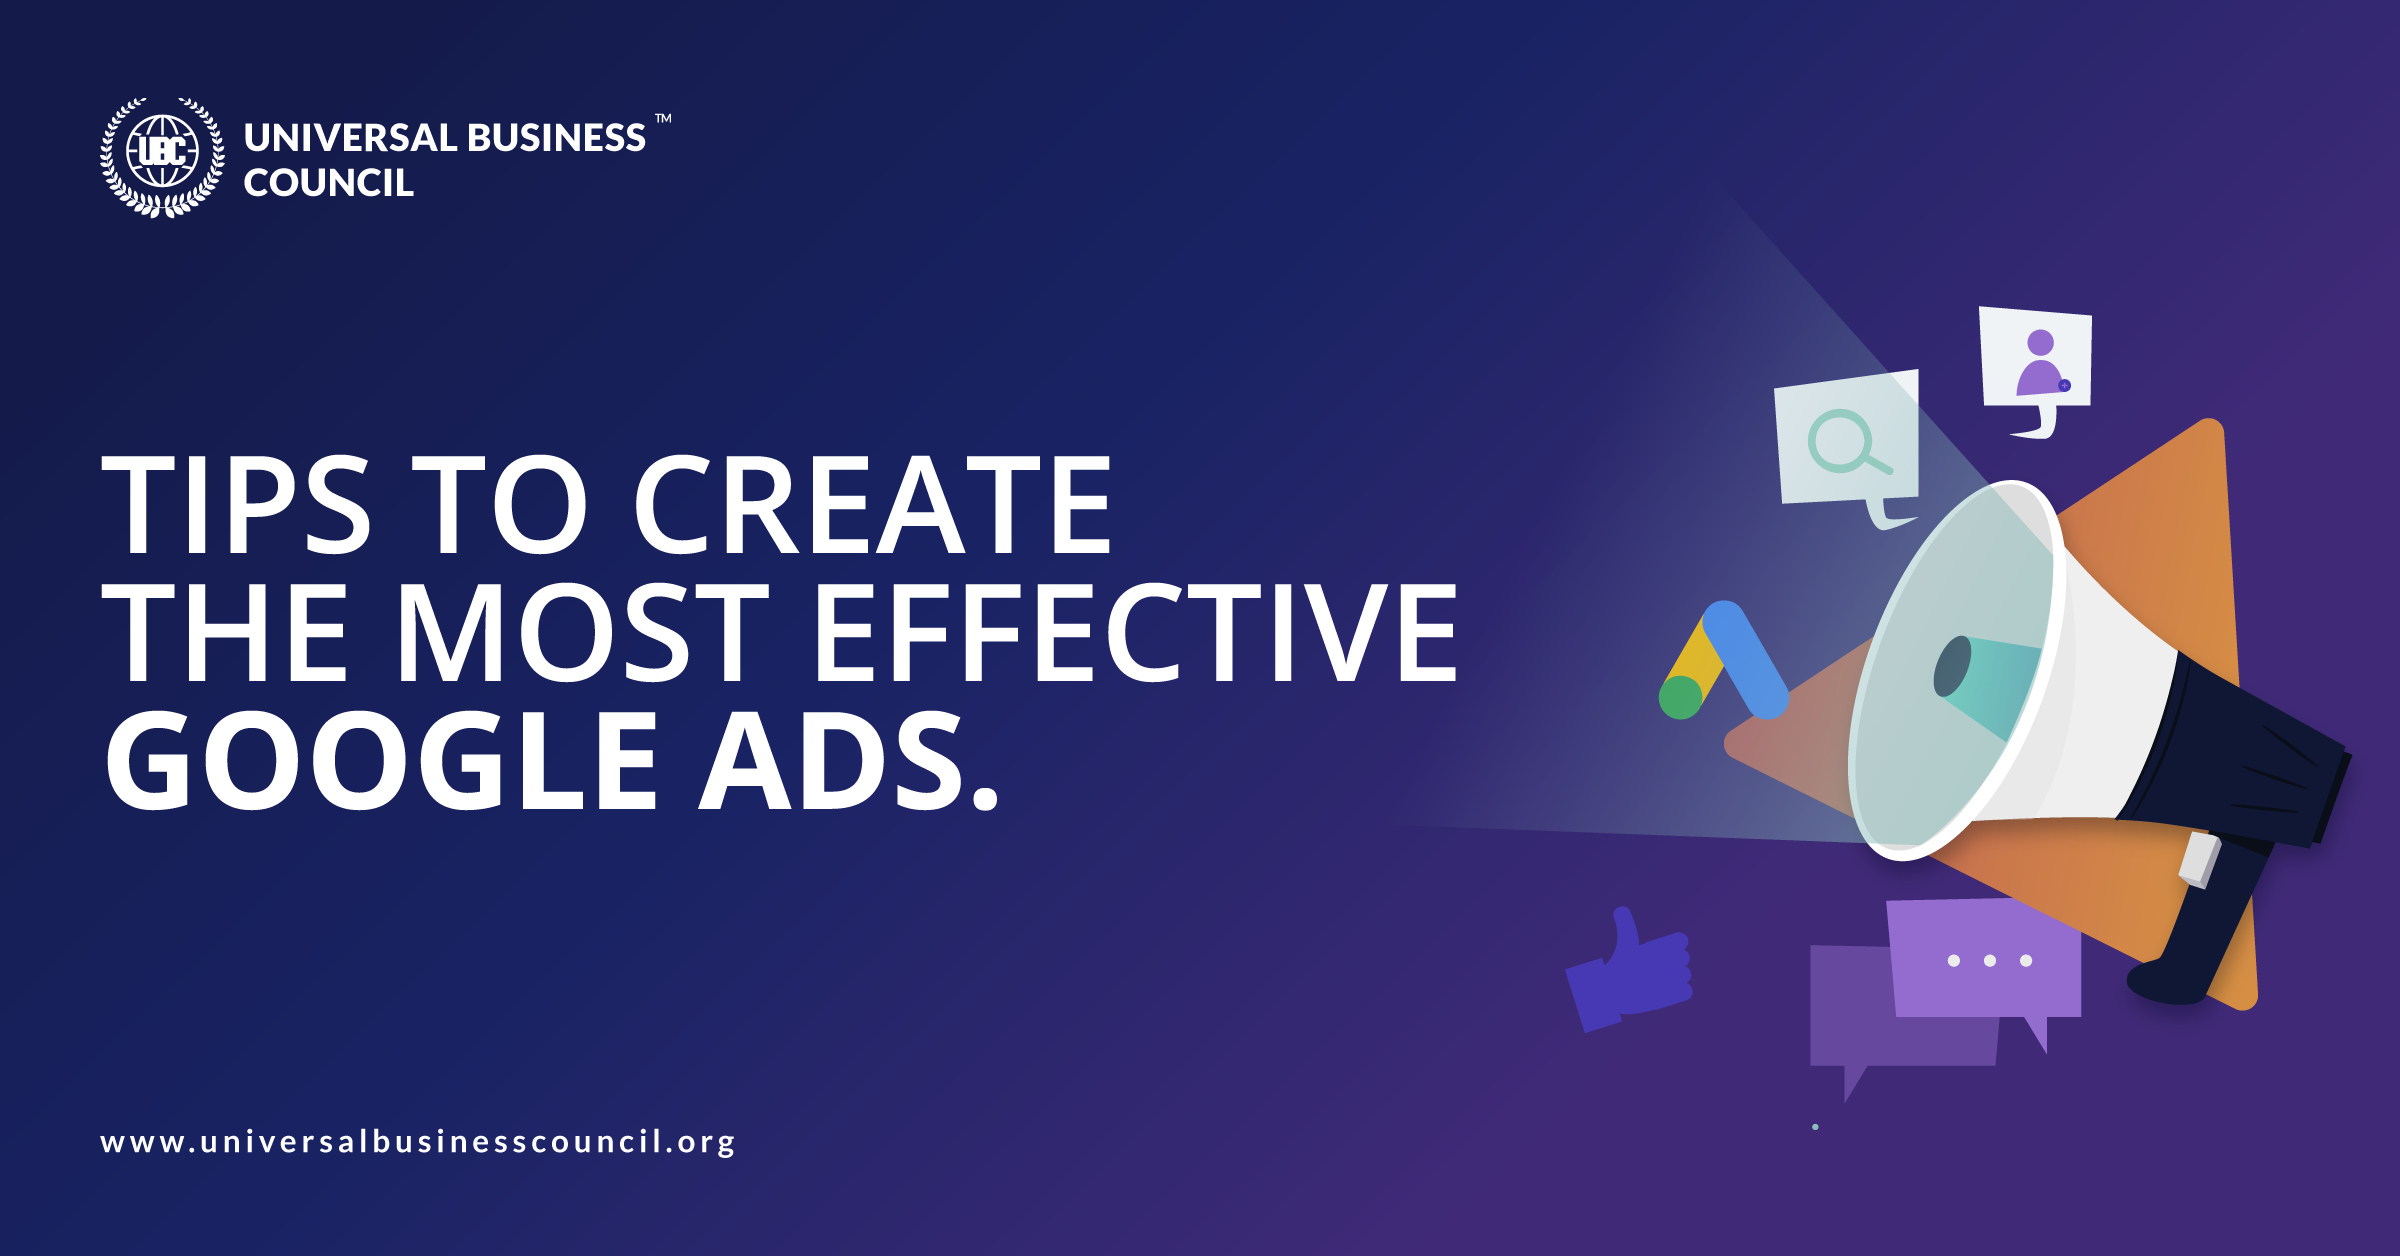 Tips-To-Create-The-Most-Effective-Google-Ads (1)